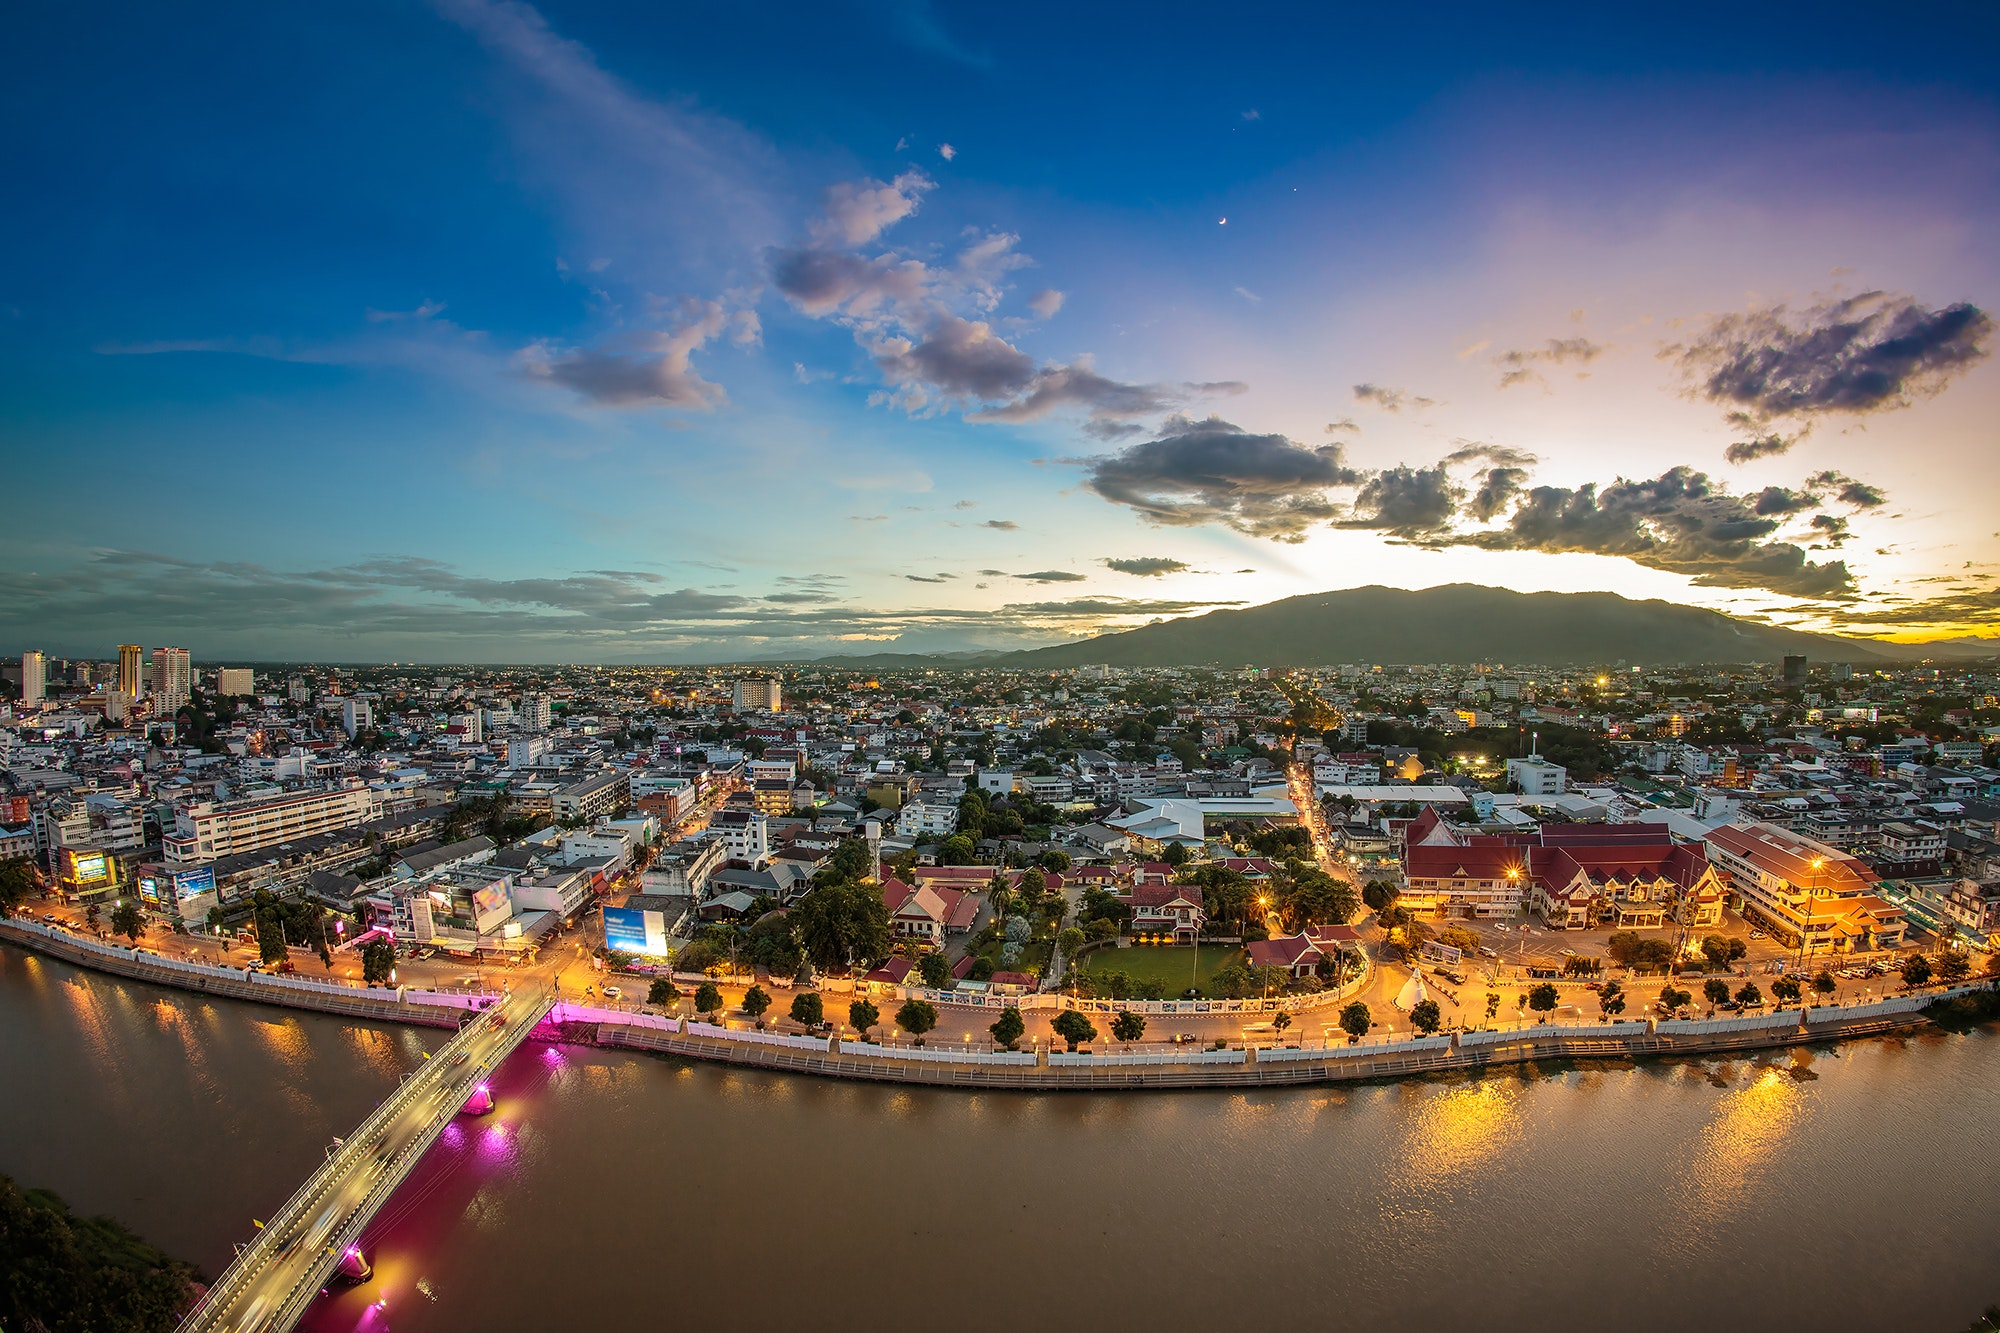 The city of Chiang Mai in Thailand at twilight